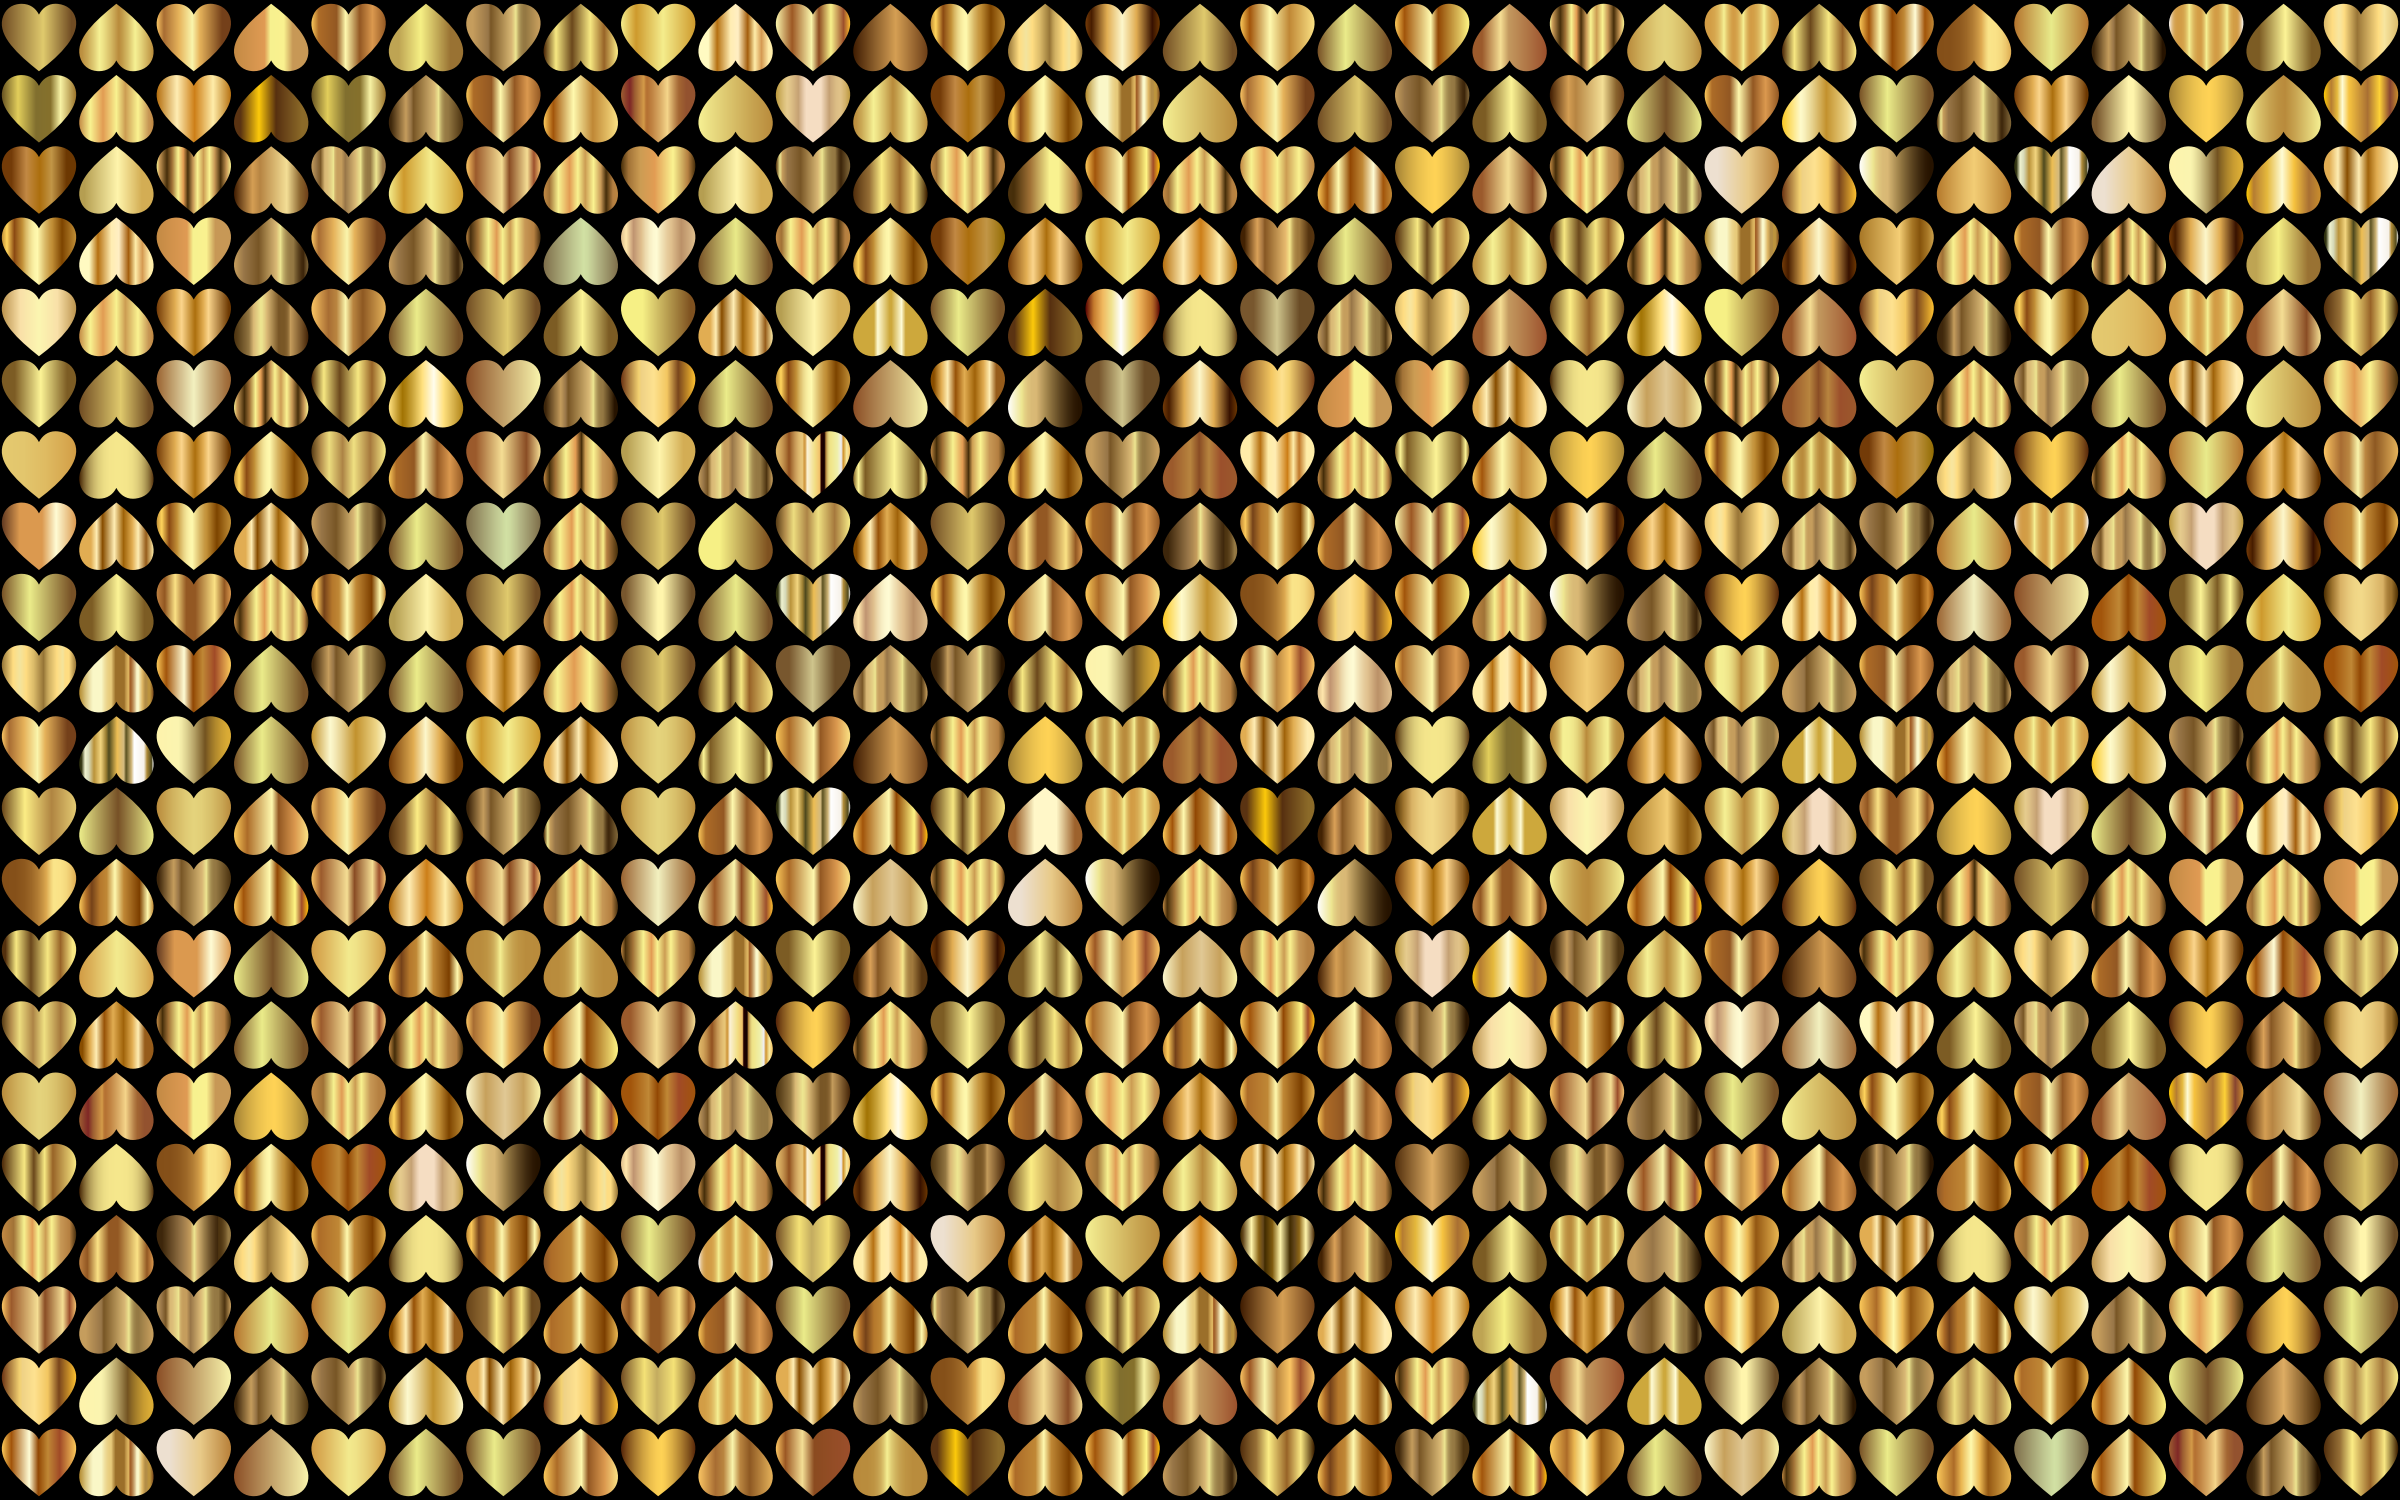 Prismatic Alternating Hearts Pattern Background 8 by GDJ